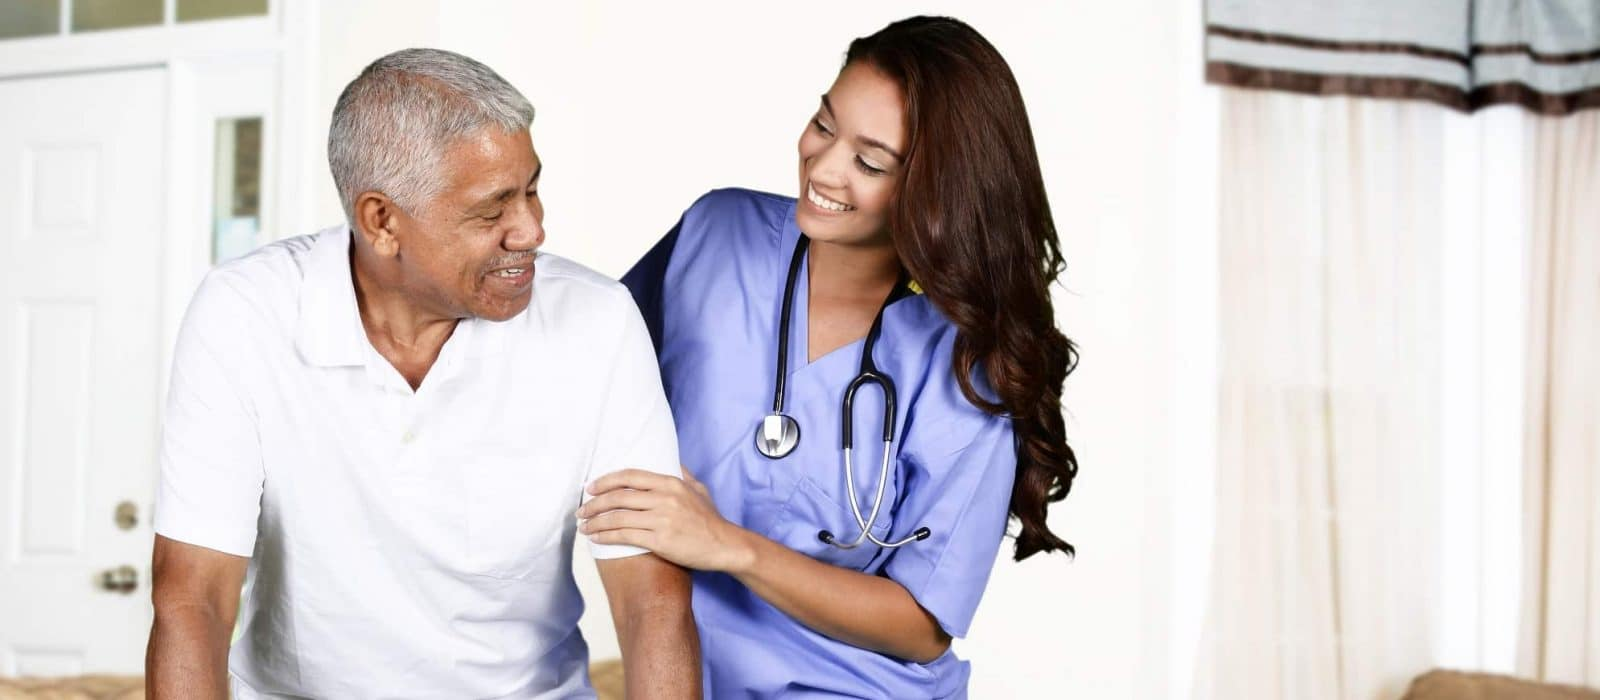 Home Health Care Jobs In New Philadelphia Ohio